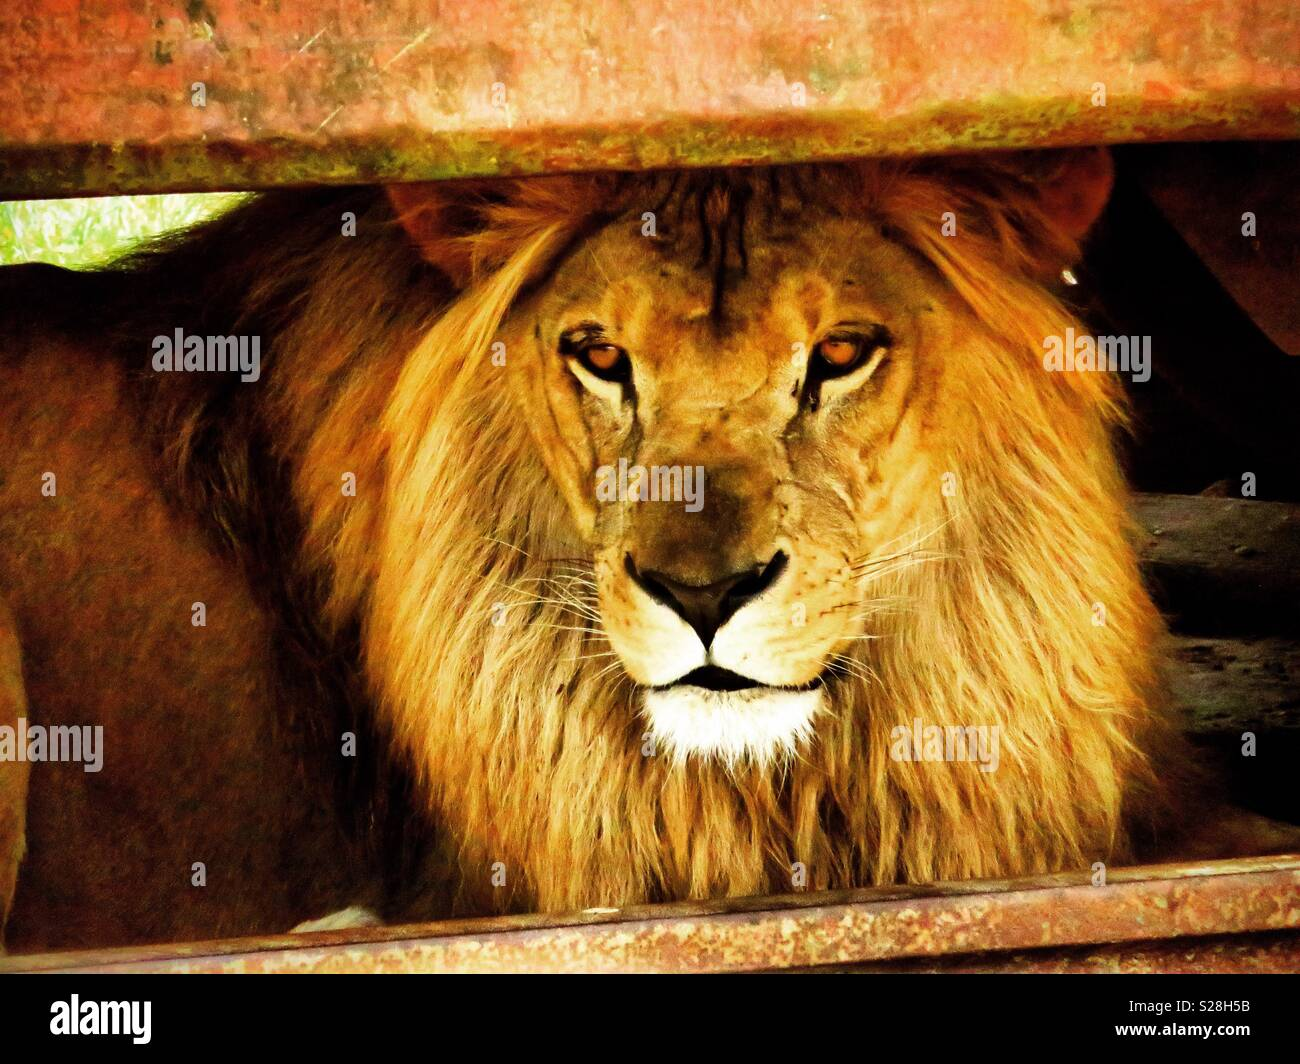 Lion resting in the shade - Stock Image